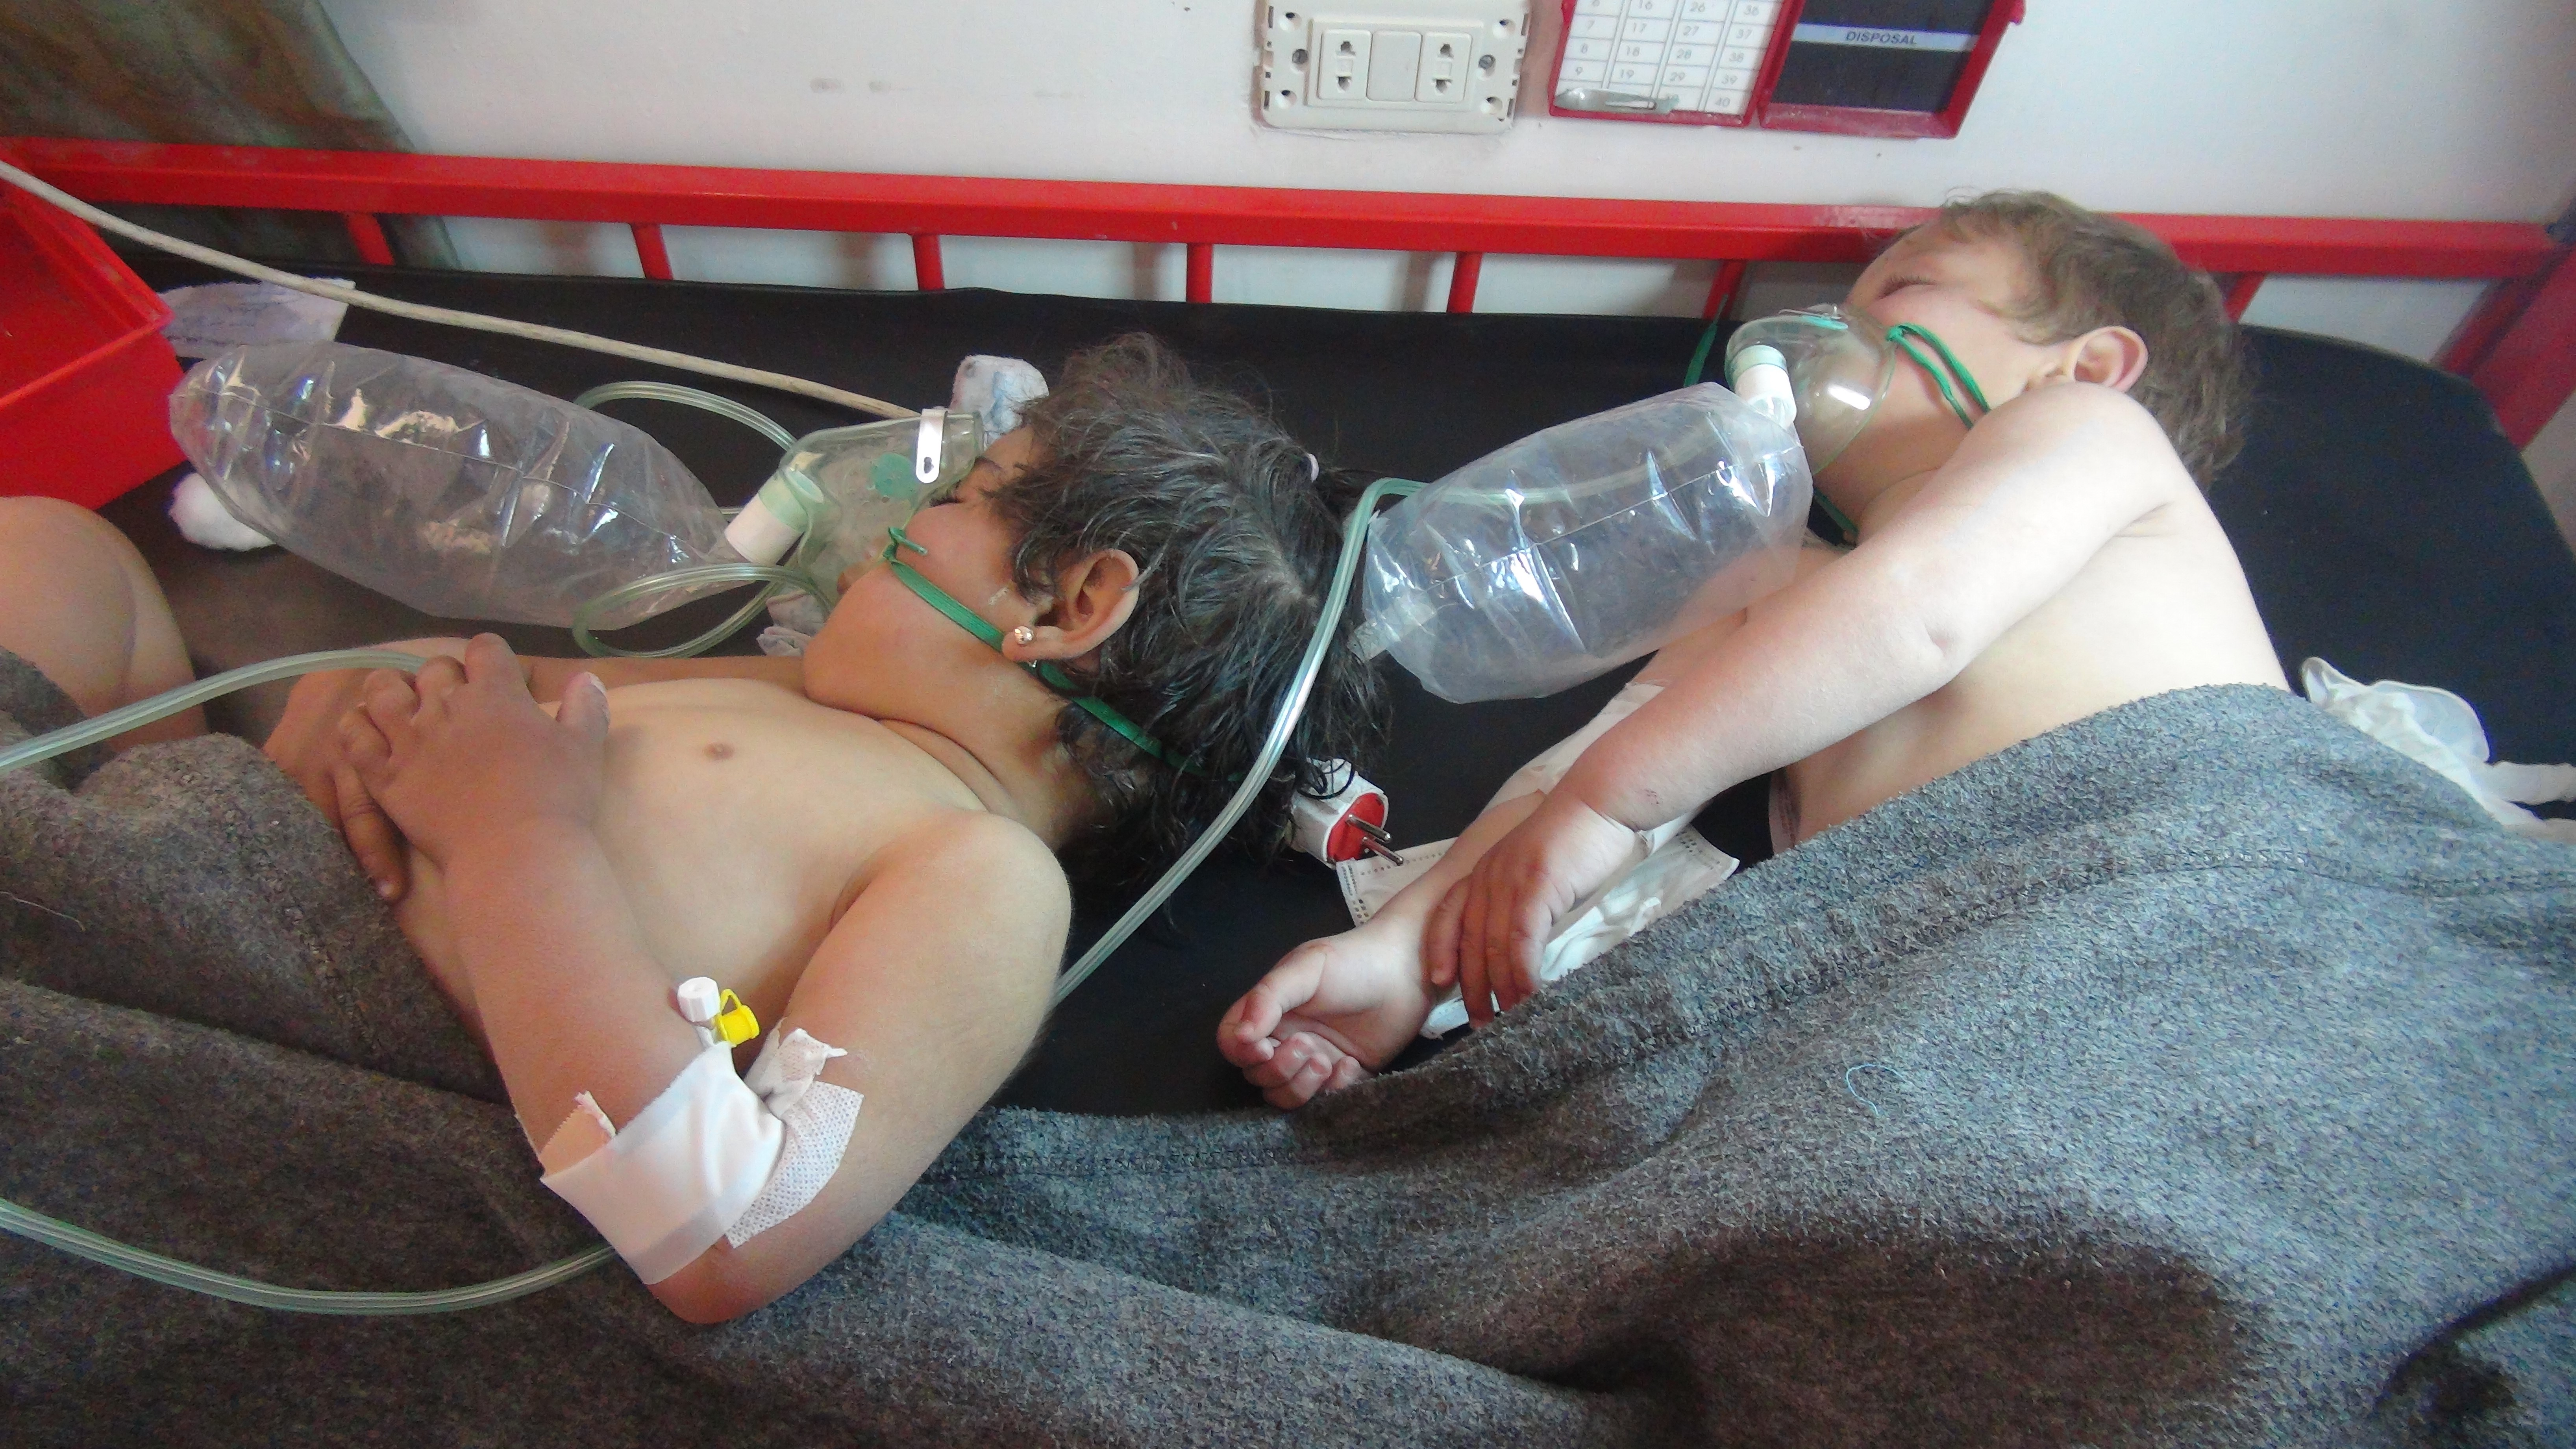 Syria Says US Airstrike Hit ISIS Poison Gas Supply And Killed Hundreds GettyImages 664343302